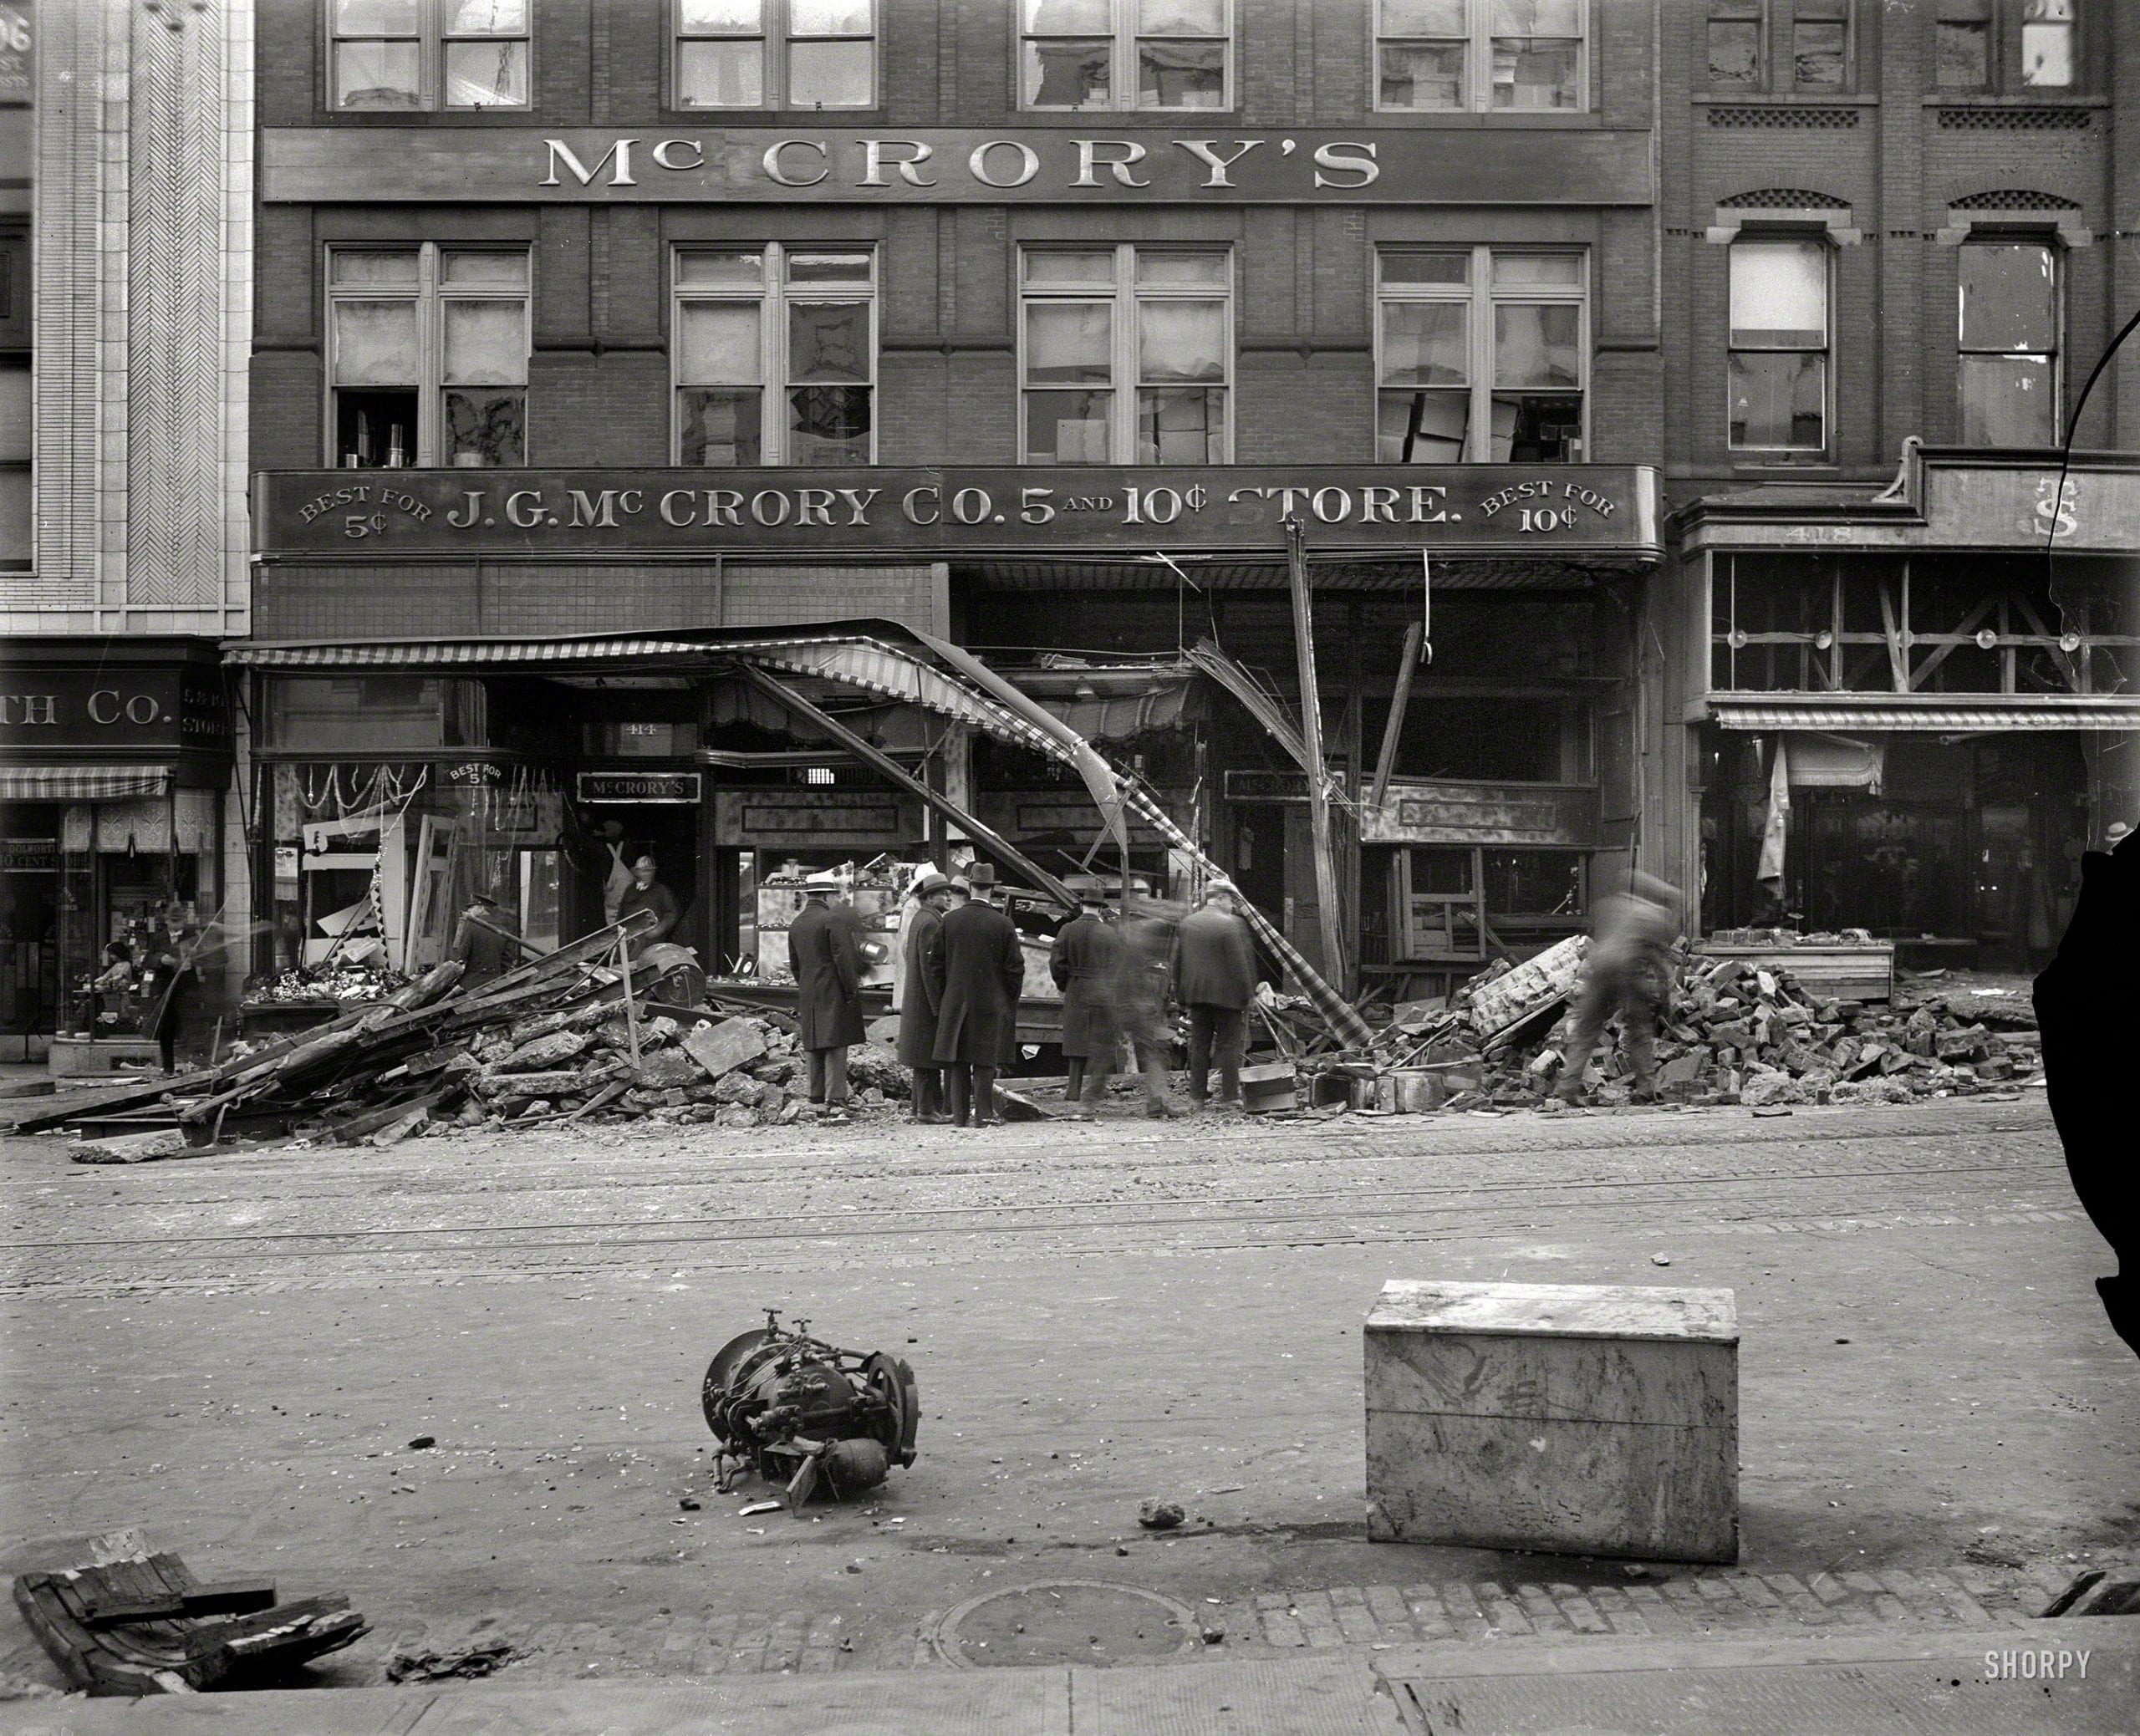 Aftermath of the McCrory disaster, a virtually forgotten chapter in the history of Washington, D.C.: At 1:32 p.m. on Nov. 21, 1929, a boiler in the basement of the McCrory five-and-dime store at 416 Seventh Street NW exploded, demolishing the ground floor and igniting a fire in a deafening blast whose final toll was six dead and dozens injured. Harris & Ewing Collection glass negative.